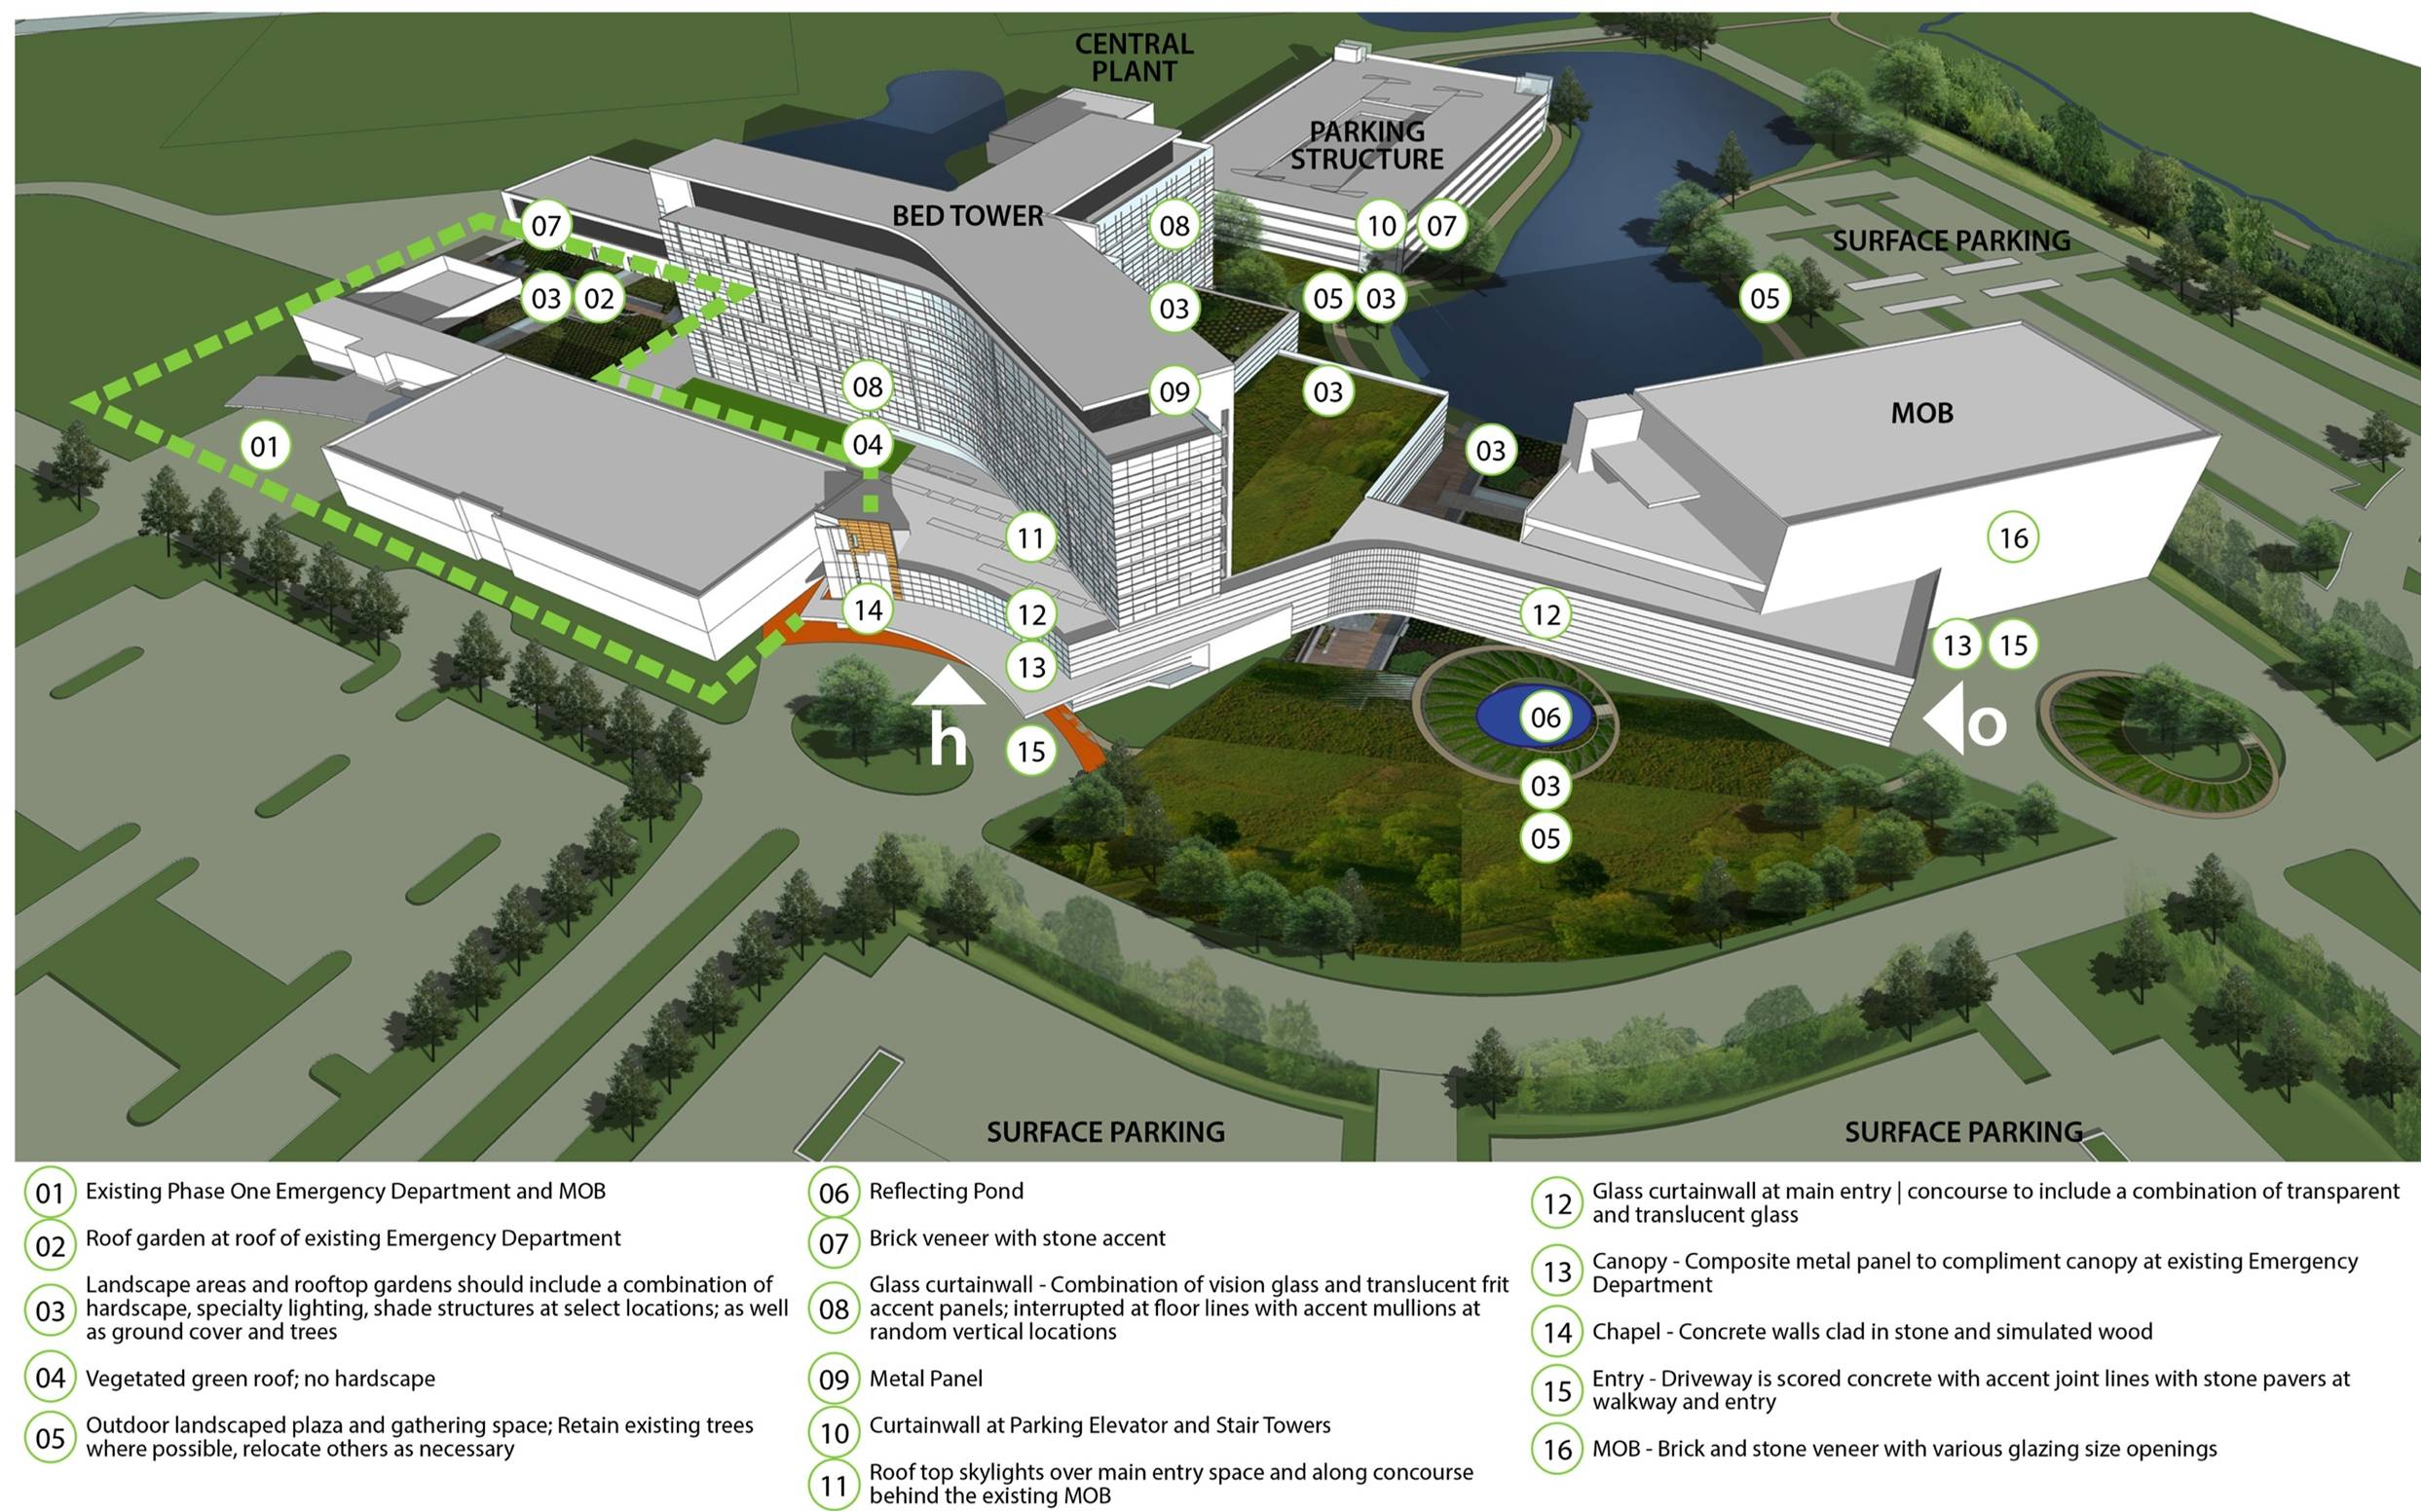 Hospital Site Plan Identifying Solutions to Problems